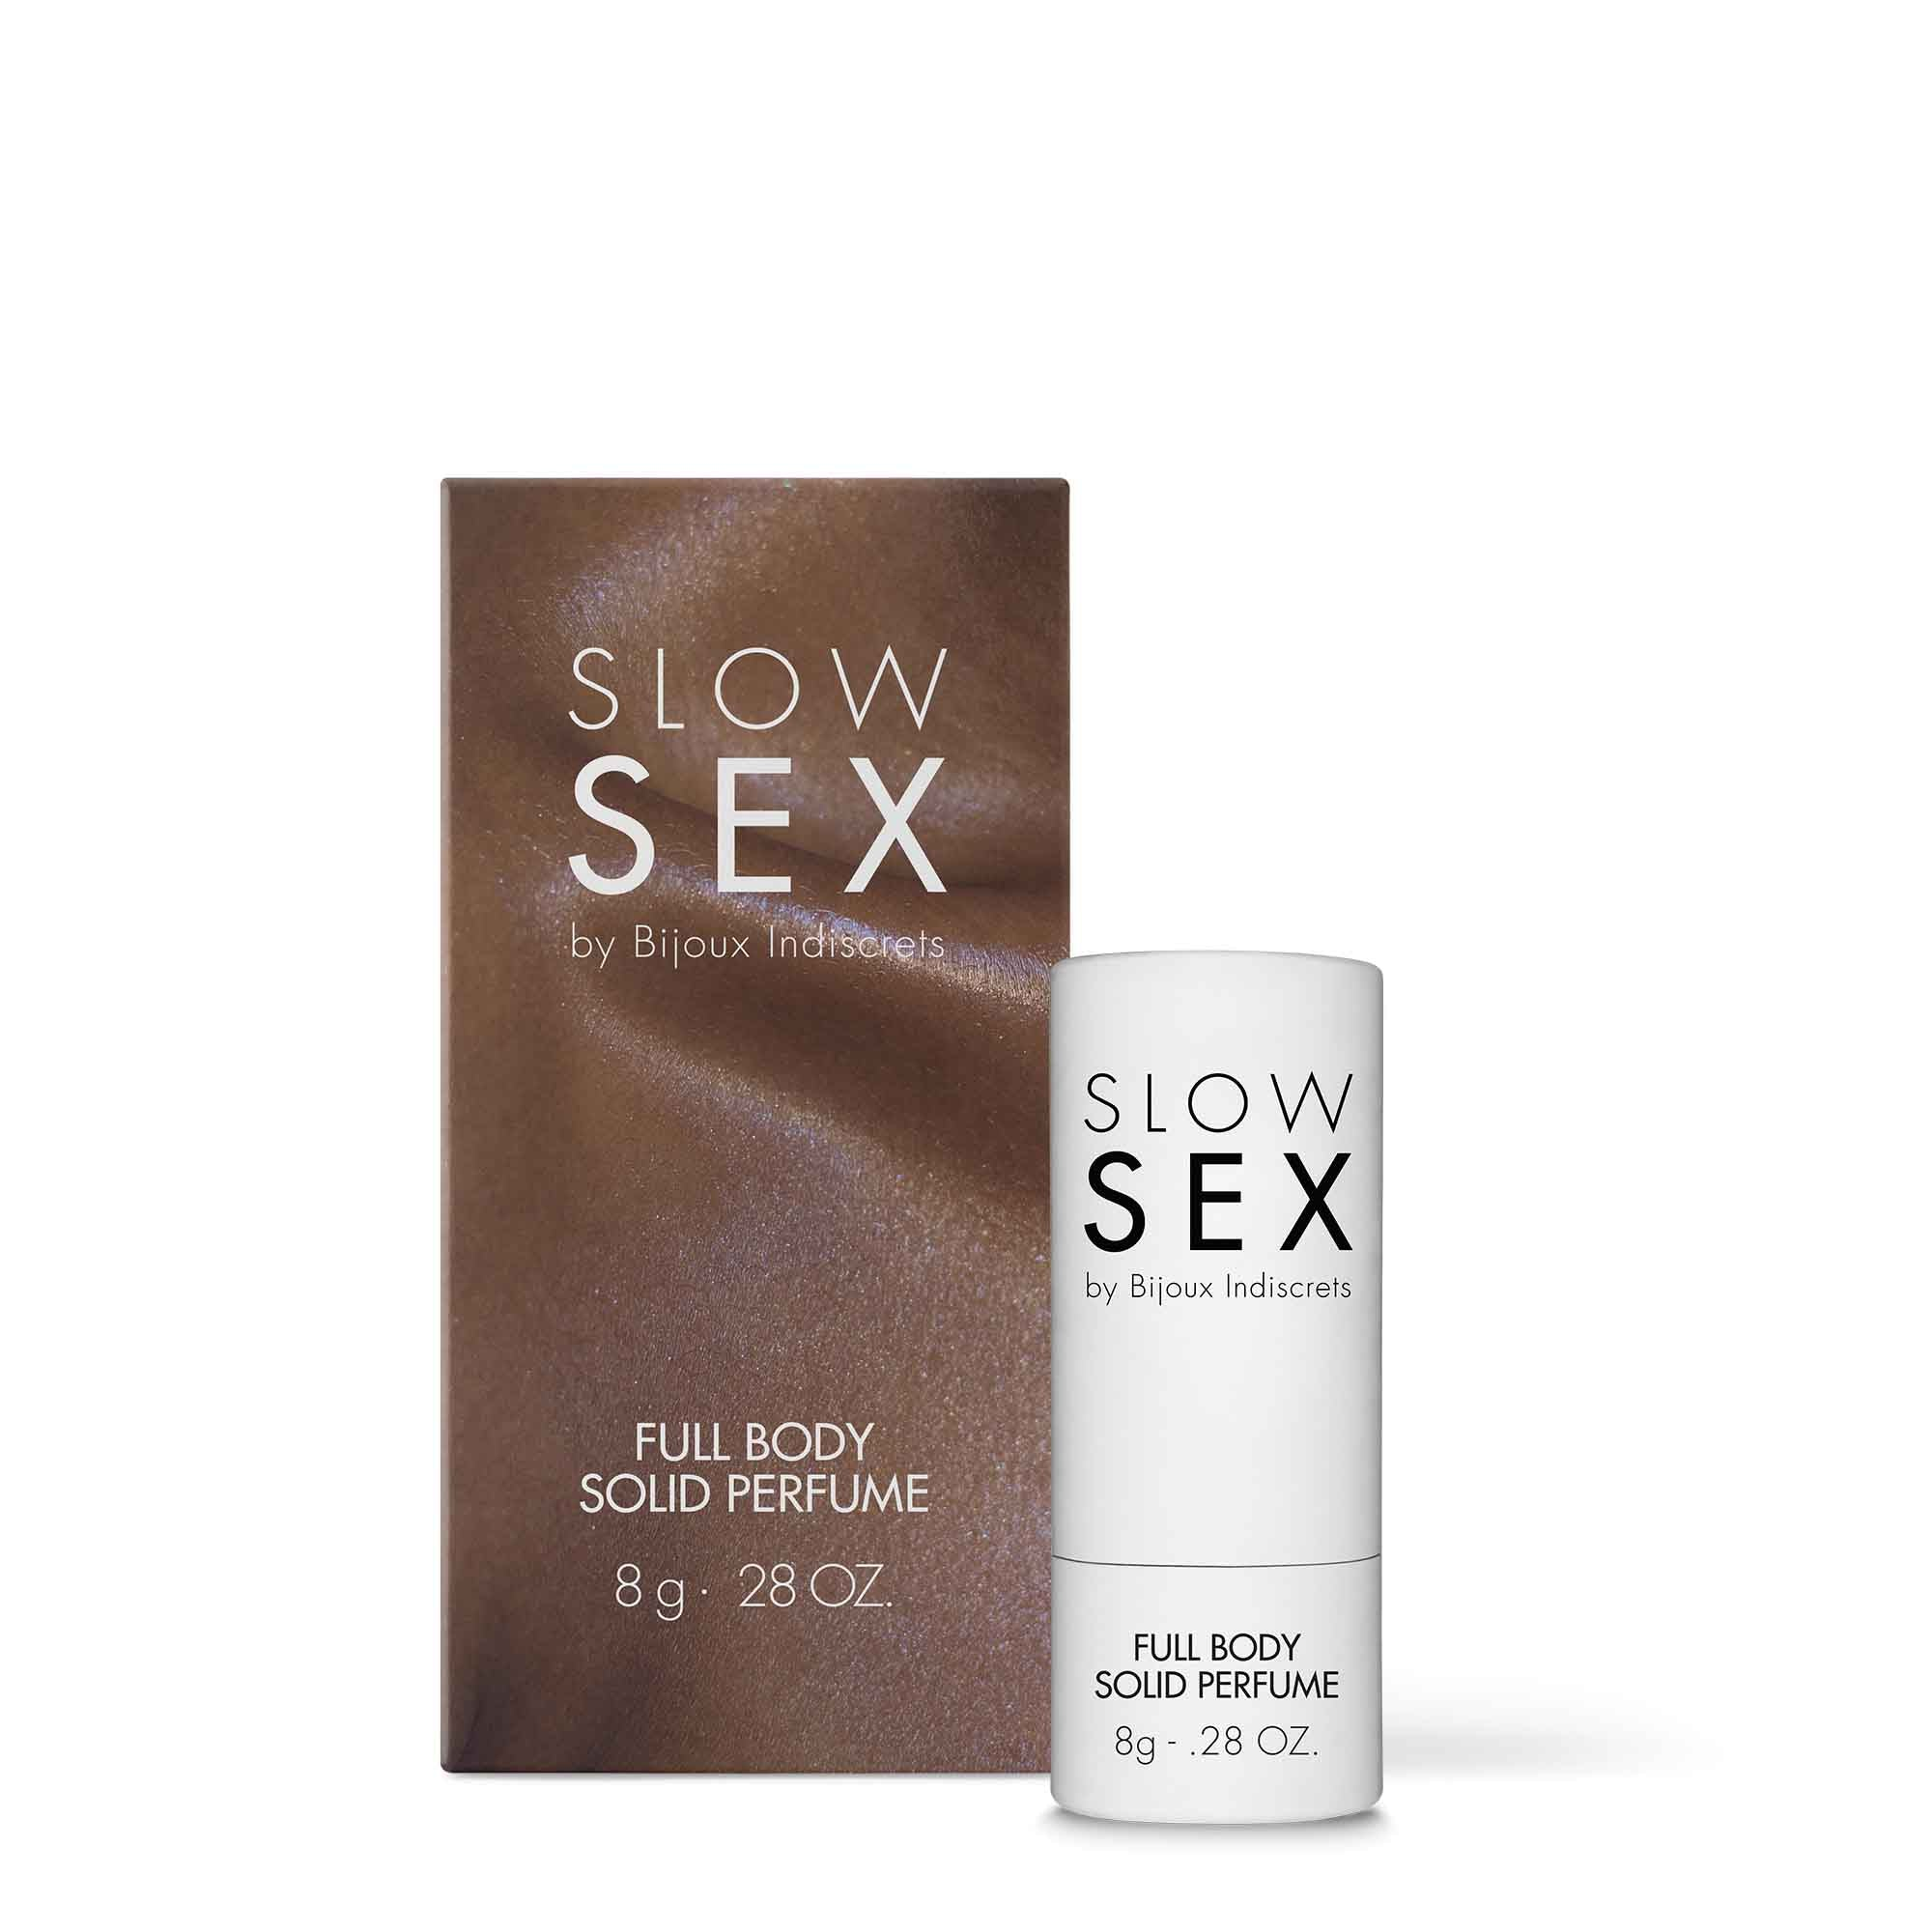 Full Body Solid Perfume -  SLOW SEX